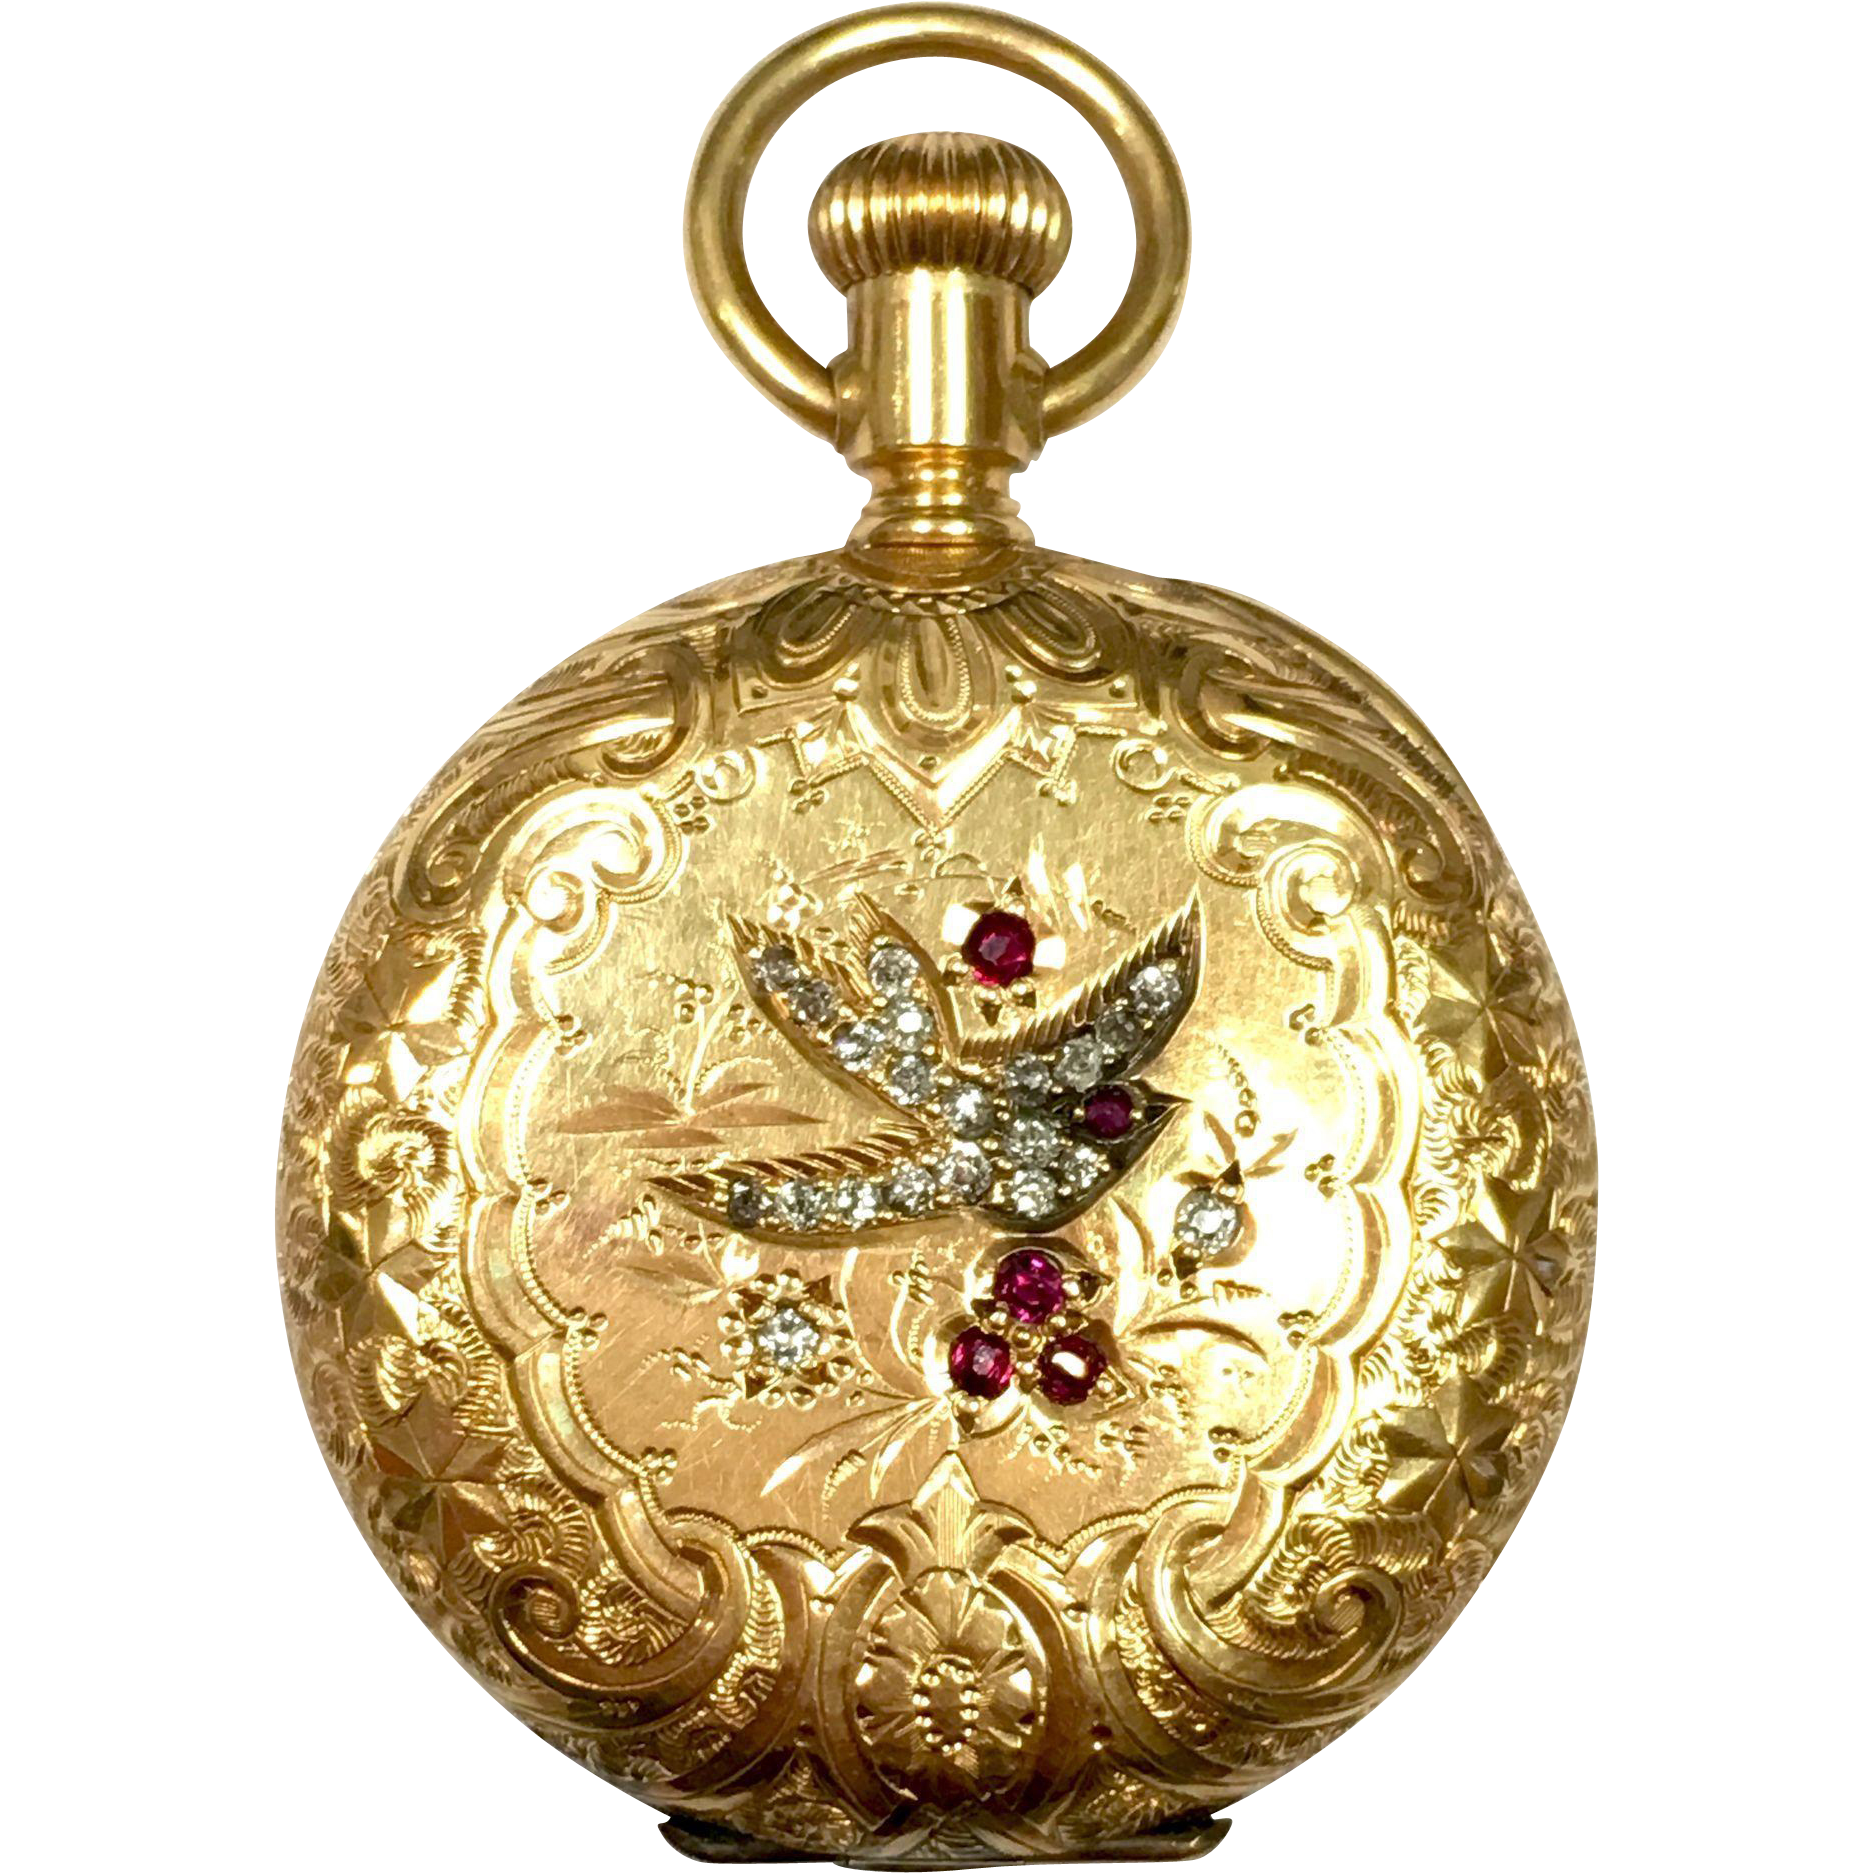 Vintage Elgin 14k Yellow Gold Pocket Watch With Diamonds And Rubies Relojeria